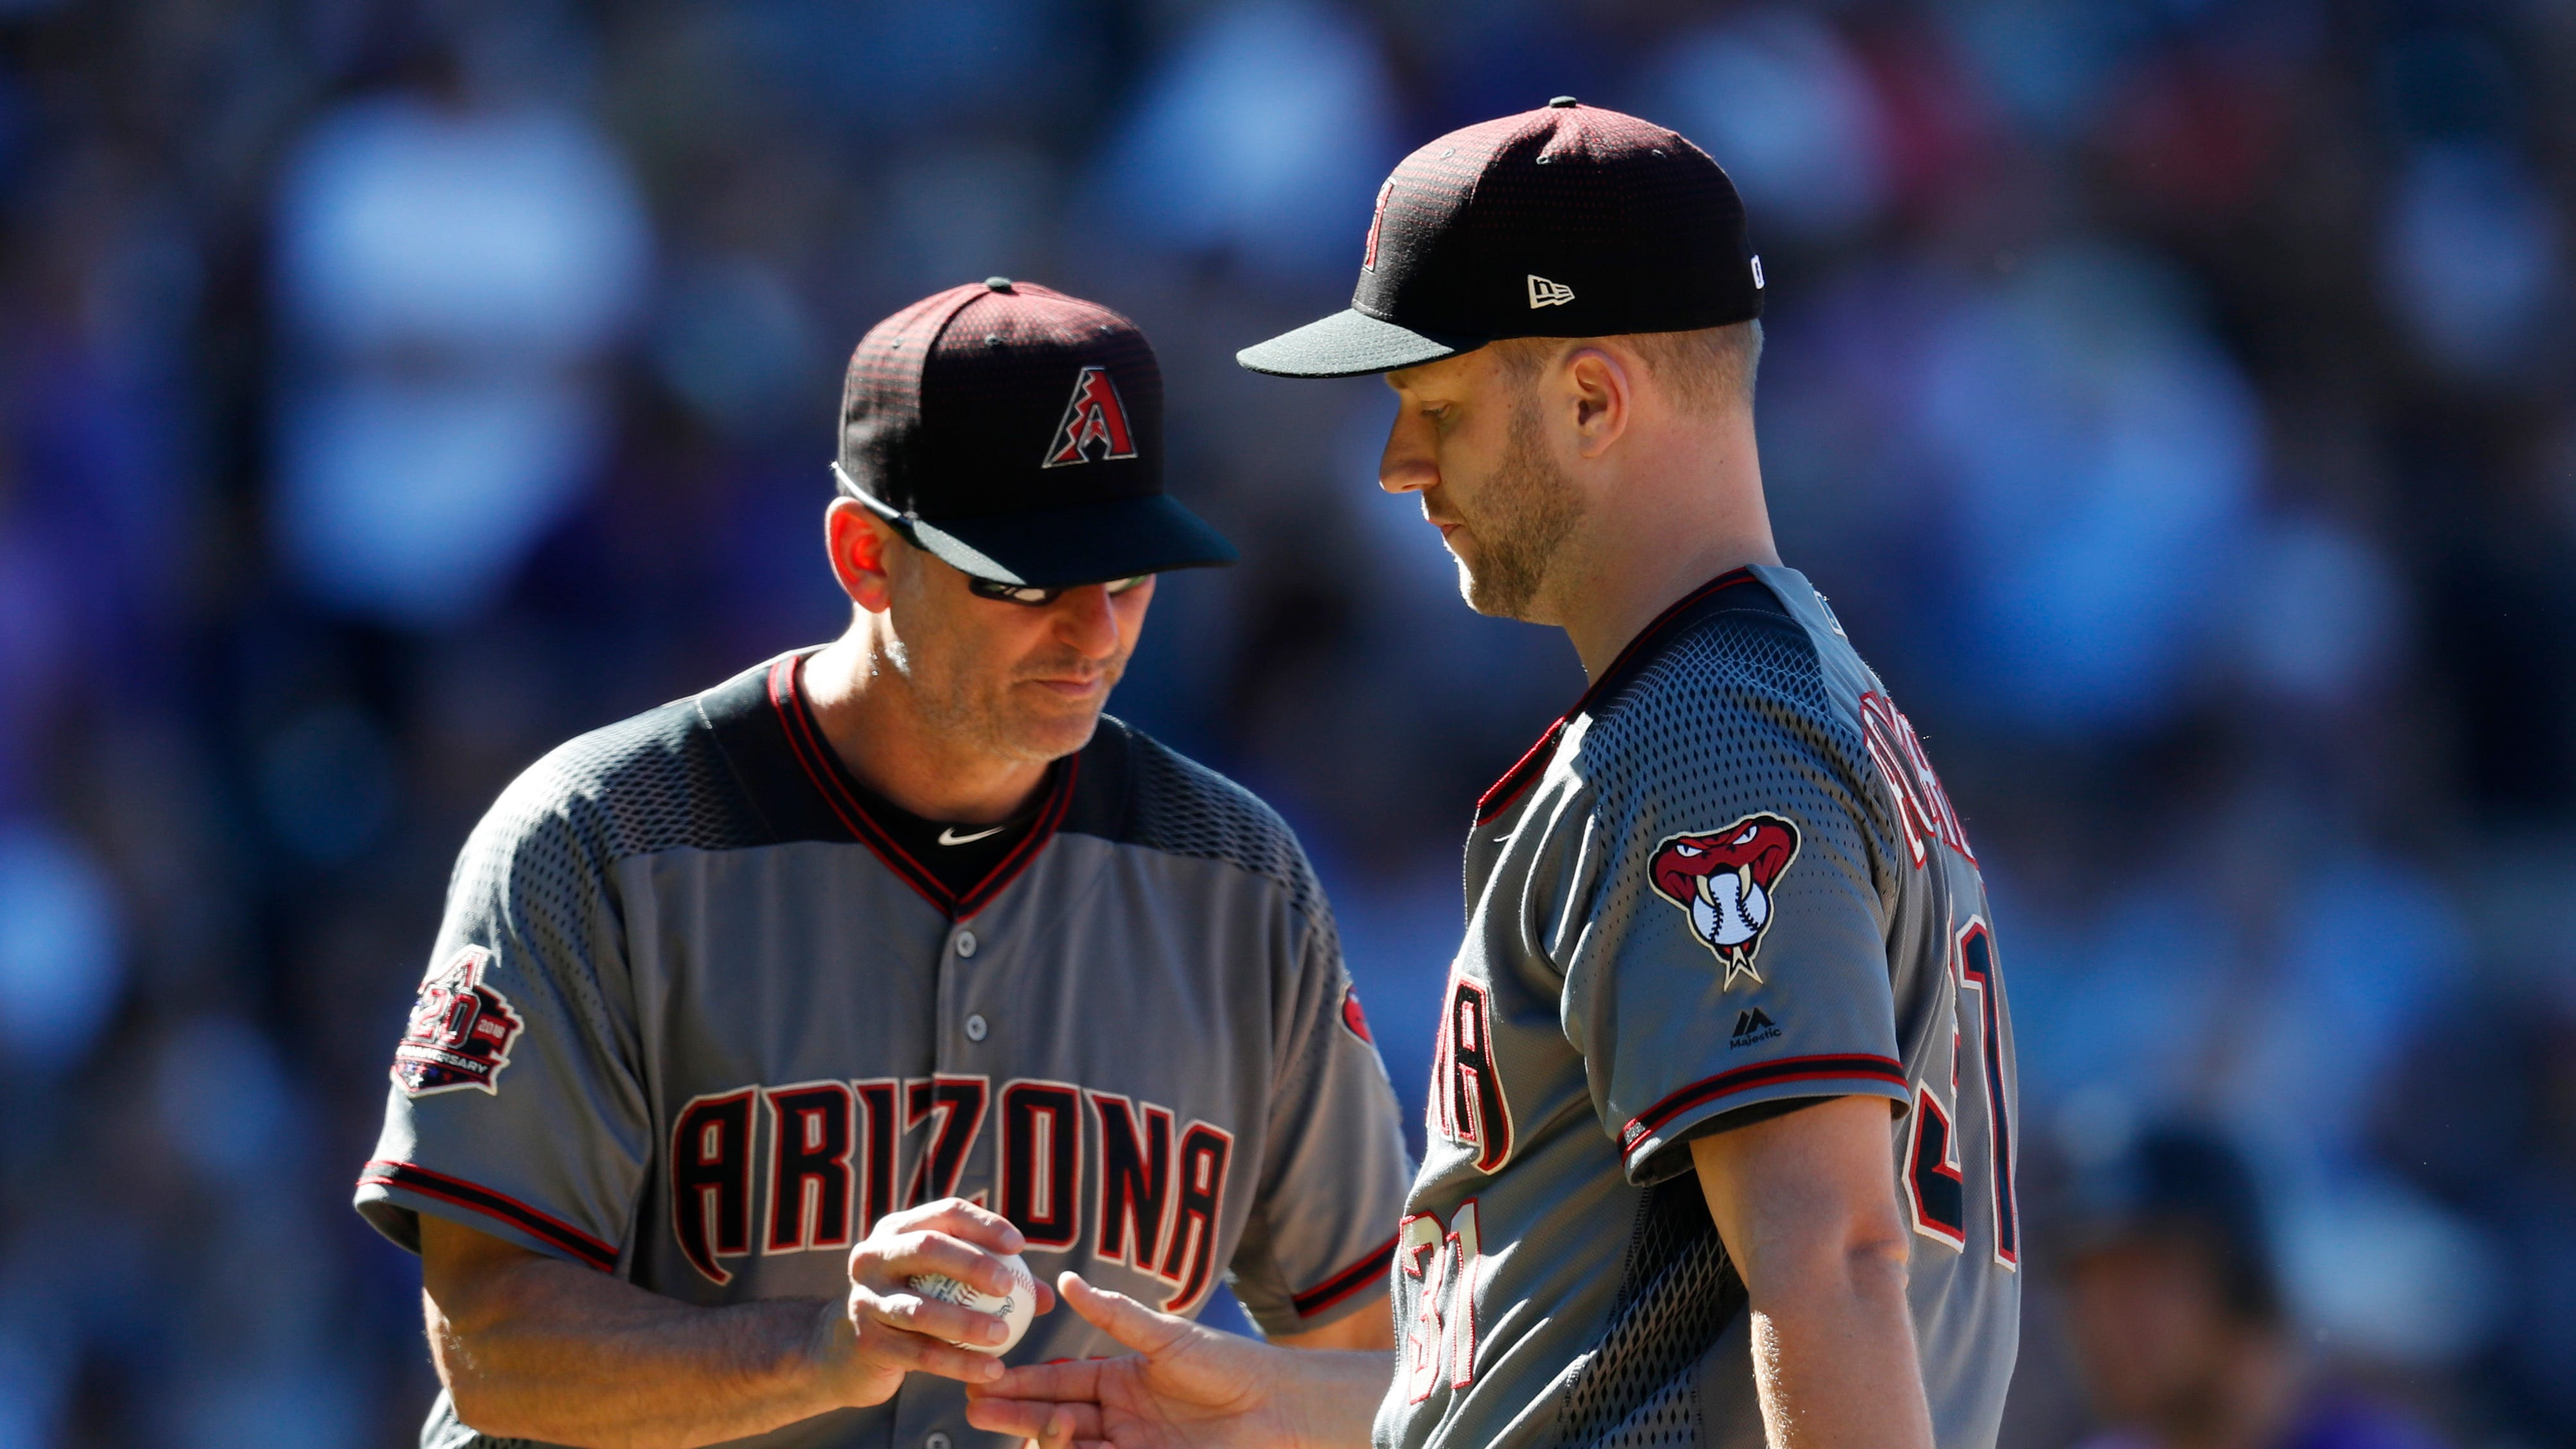 While assigning blame, don't forget Diamondbacks manager Torey Lovullo